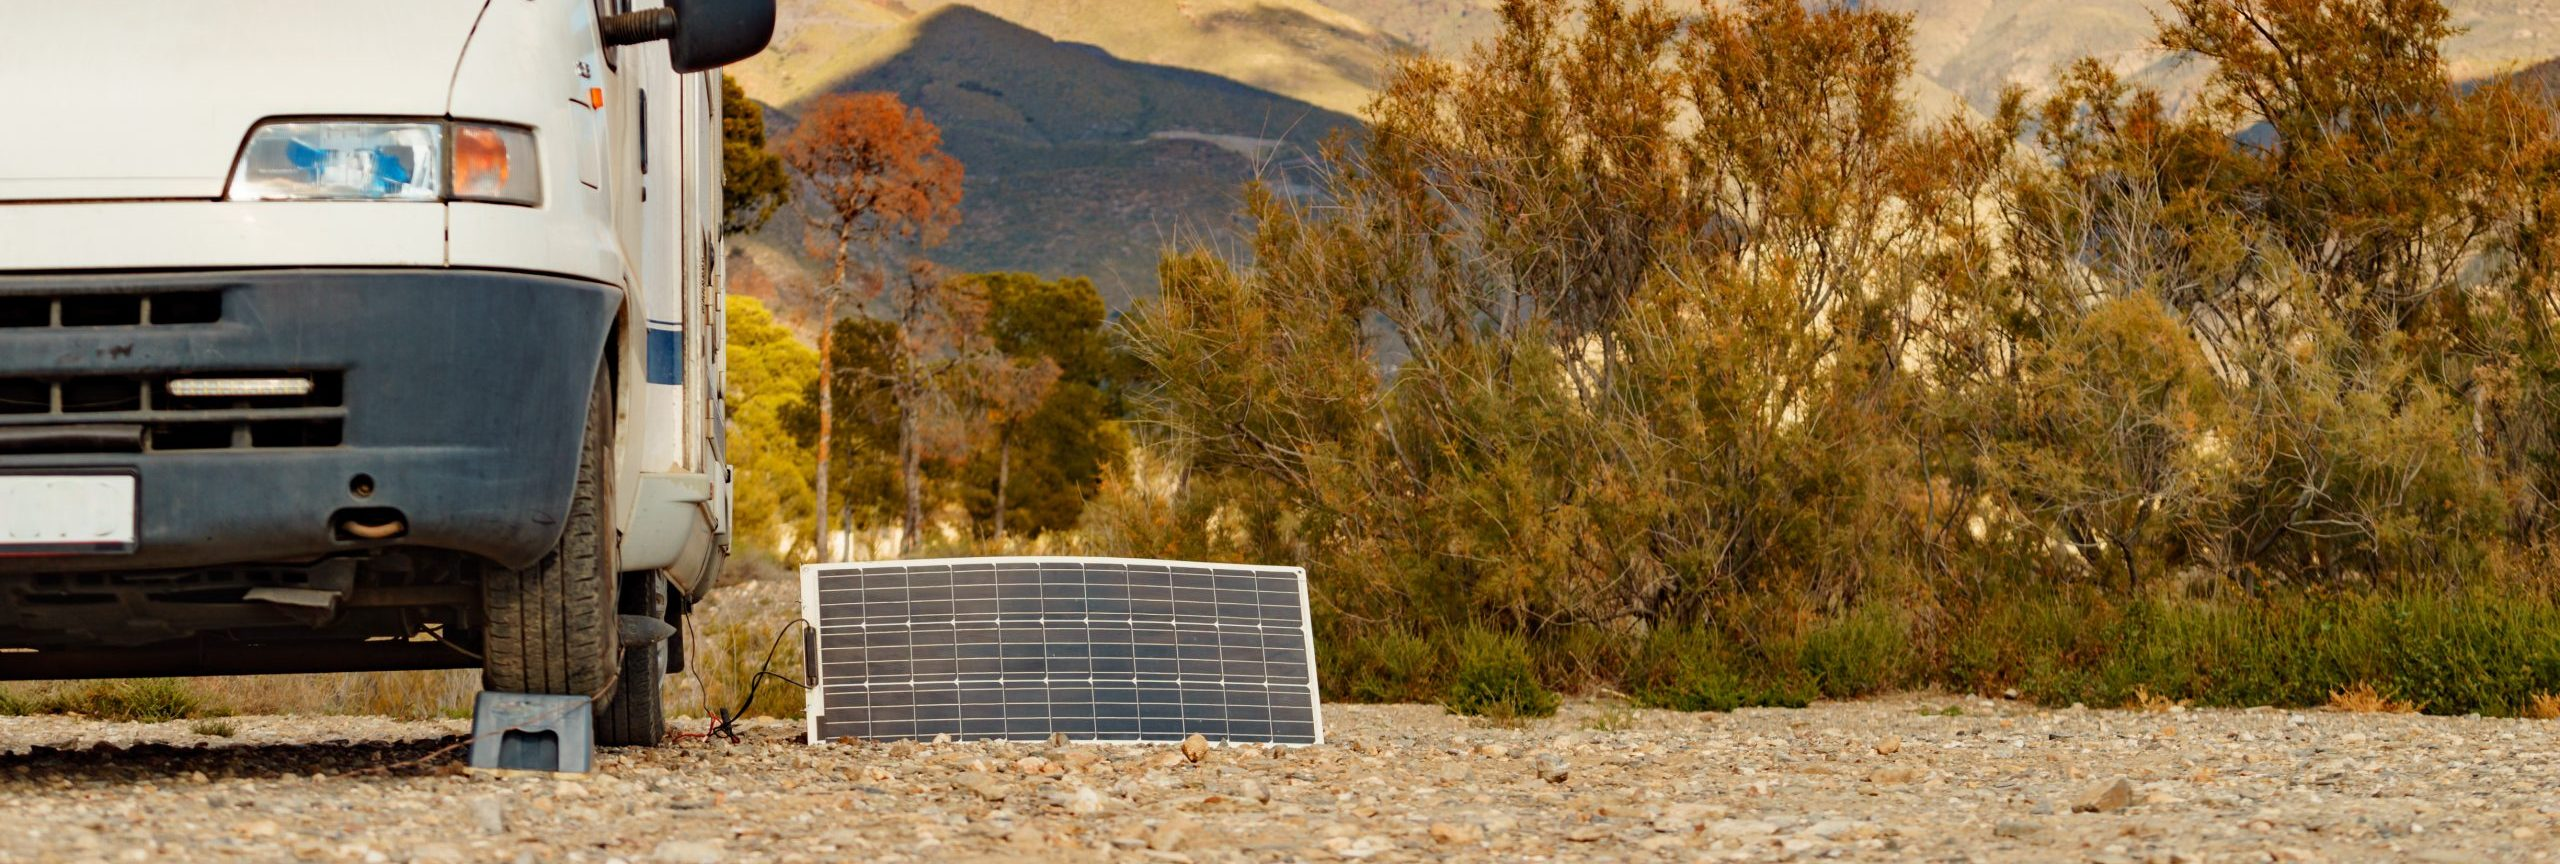 Offset Your RV's Carbon Footprint